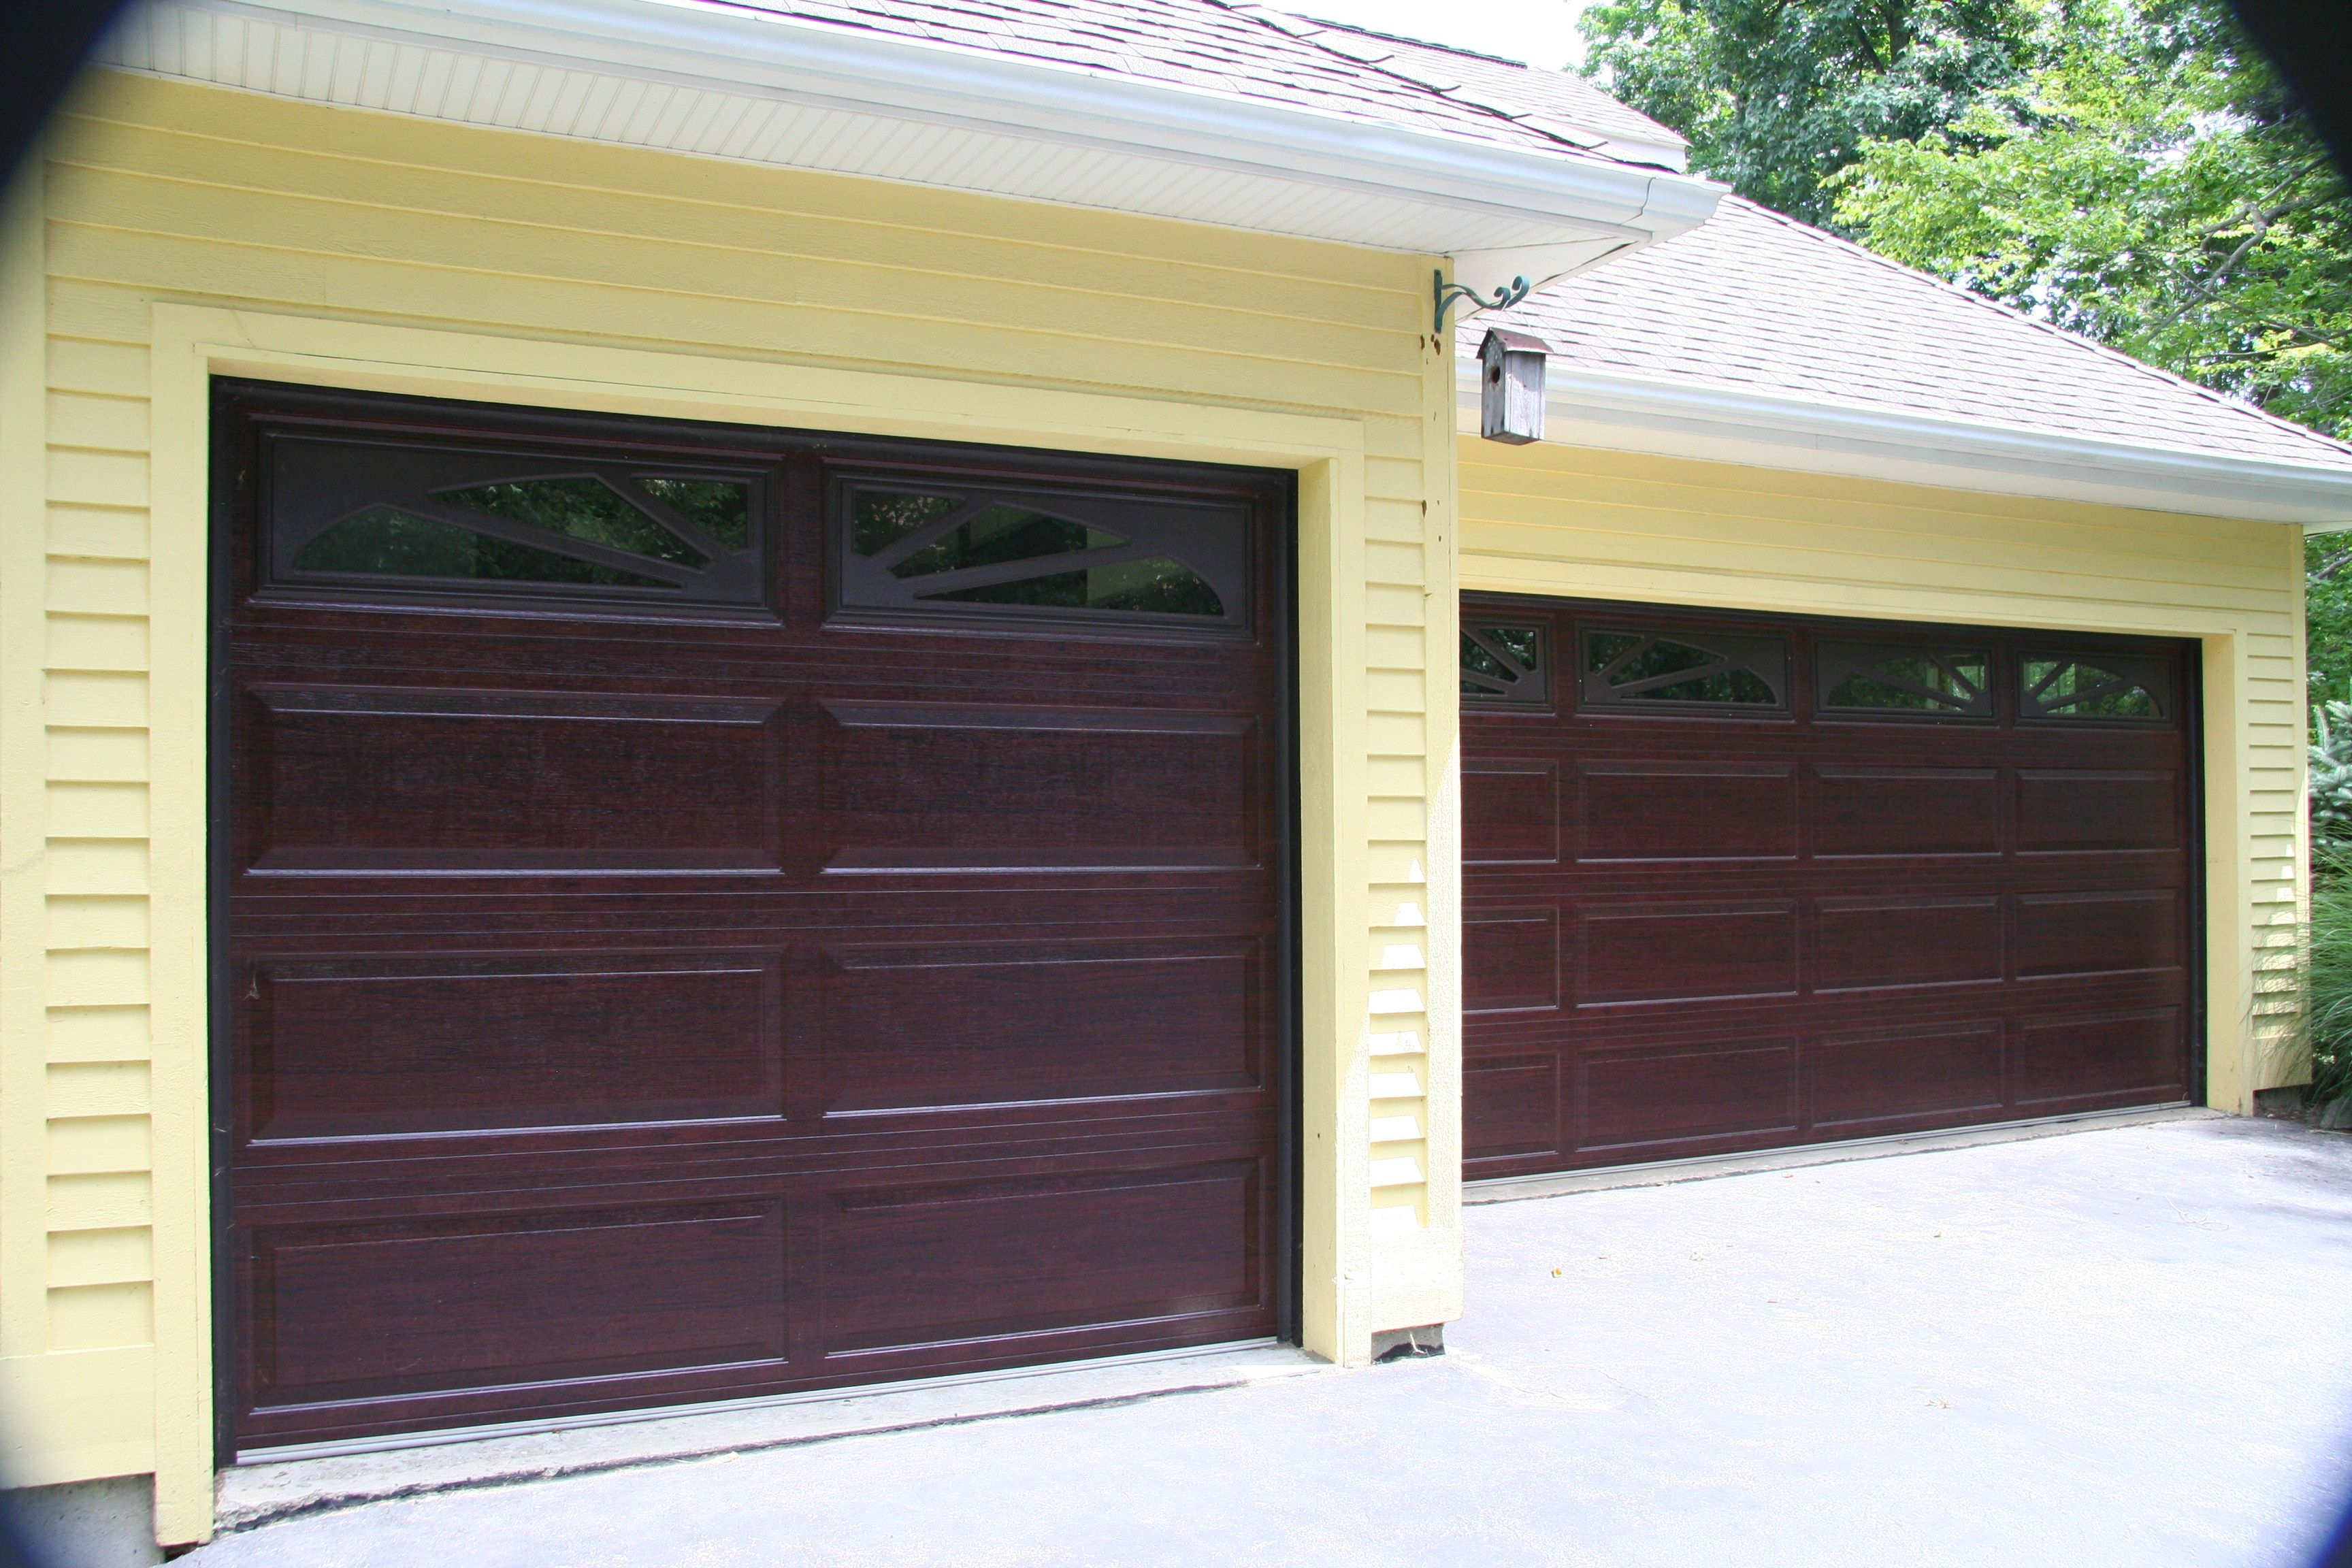 Genial Raynor Garage Doors Grand Rapids Mi For Really Encourage